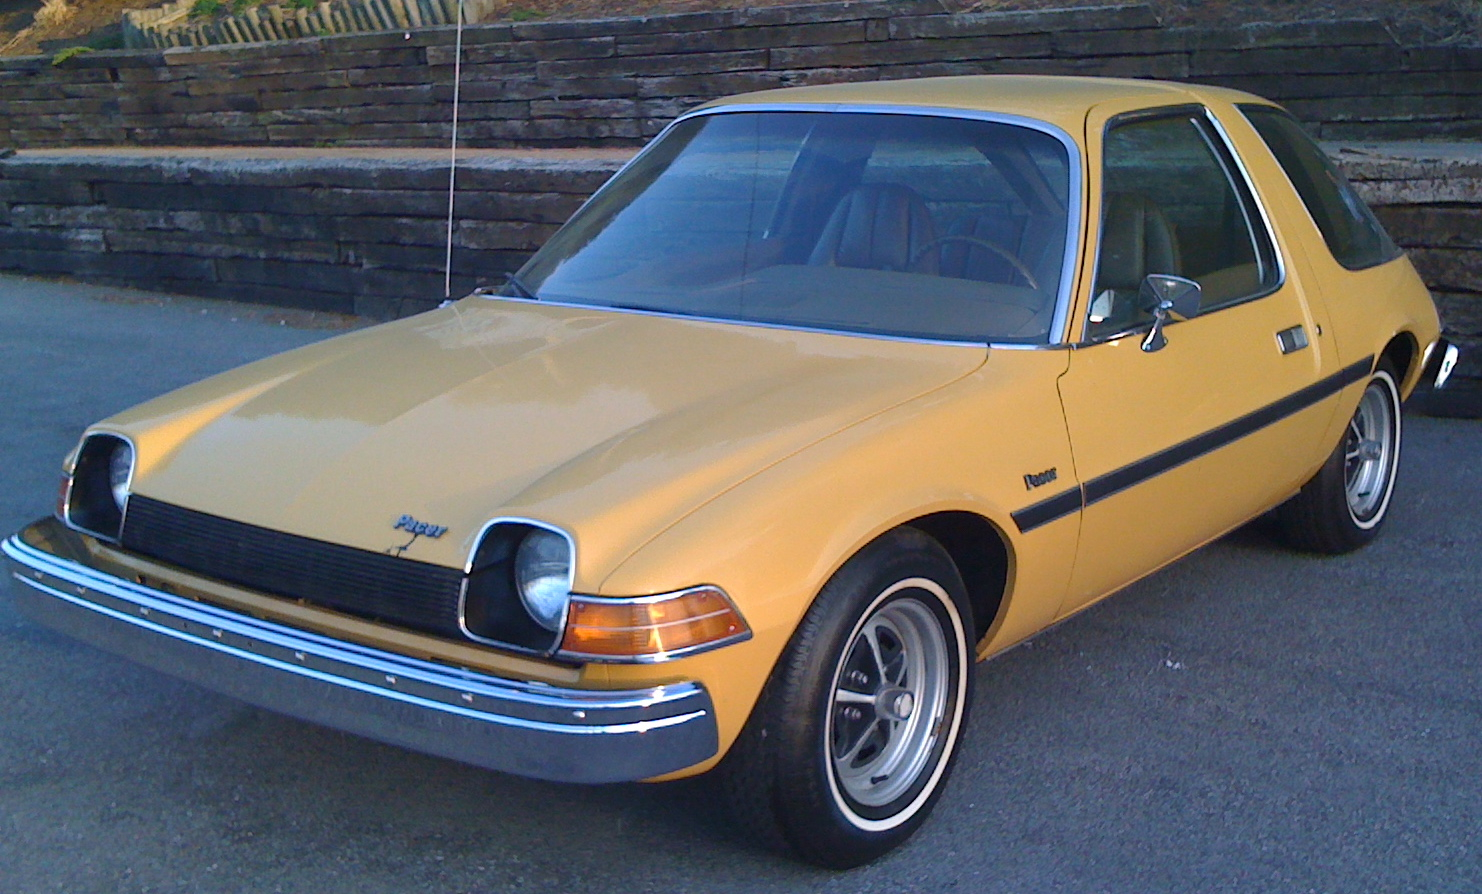 AMC Pacer X 3 Door Hatchback 1975